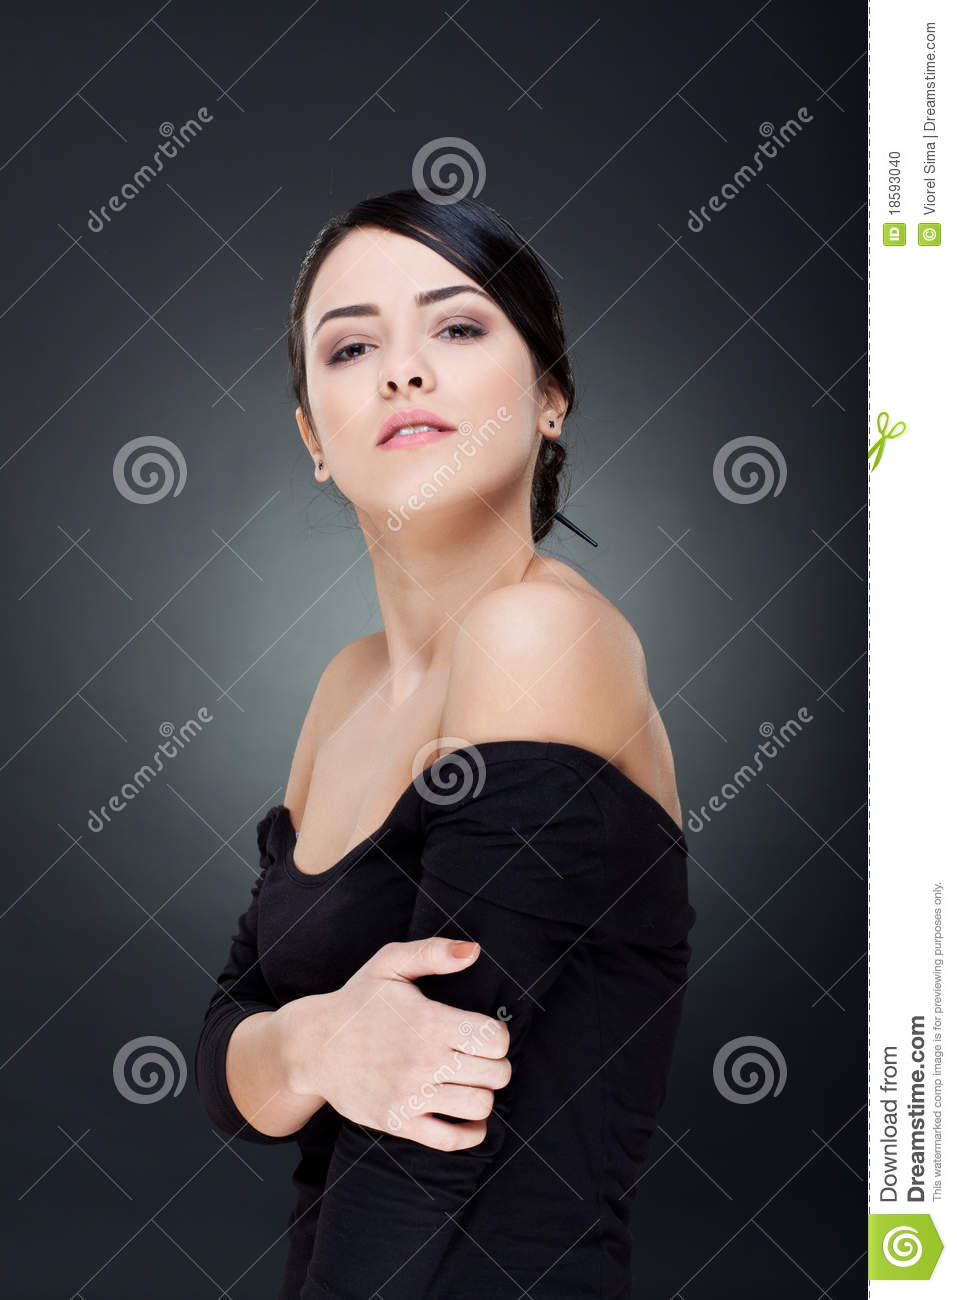 Woman Looking Over Her Shoulder Stock Photo - Image: 18593040